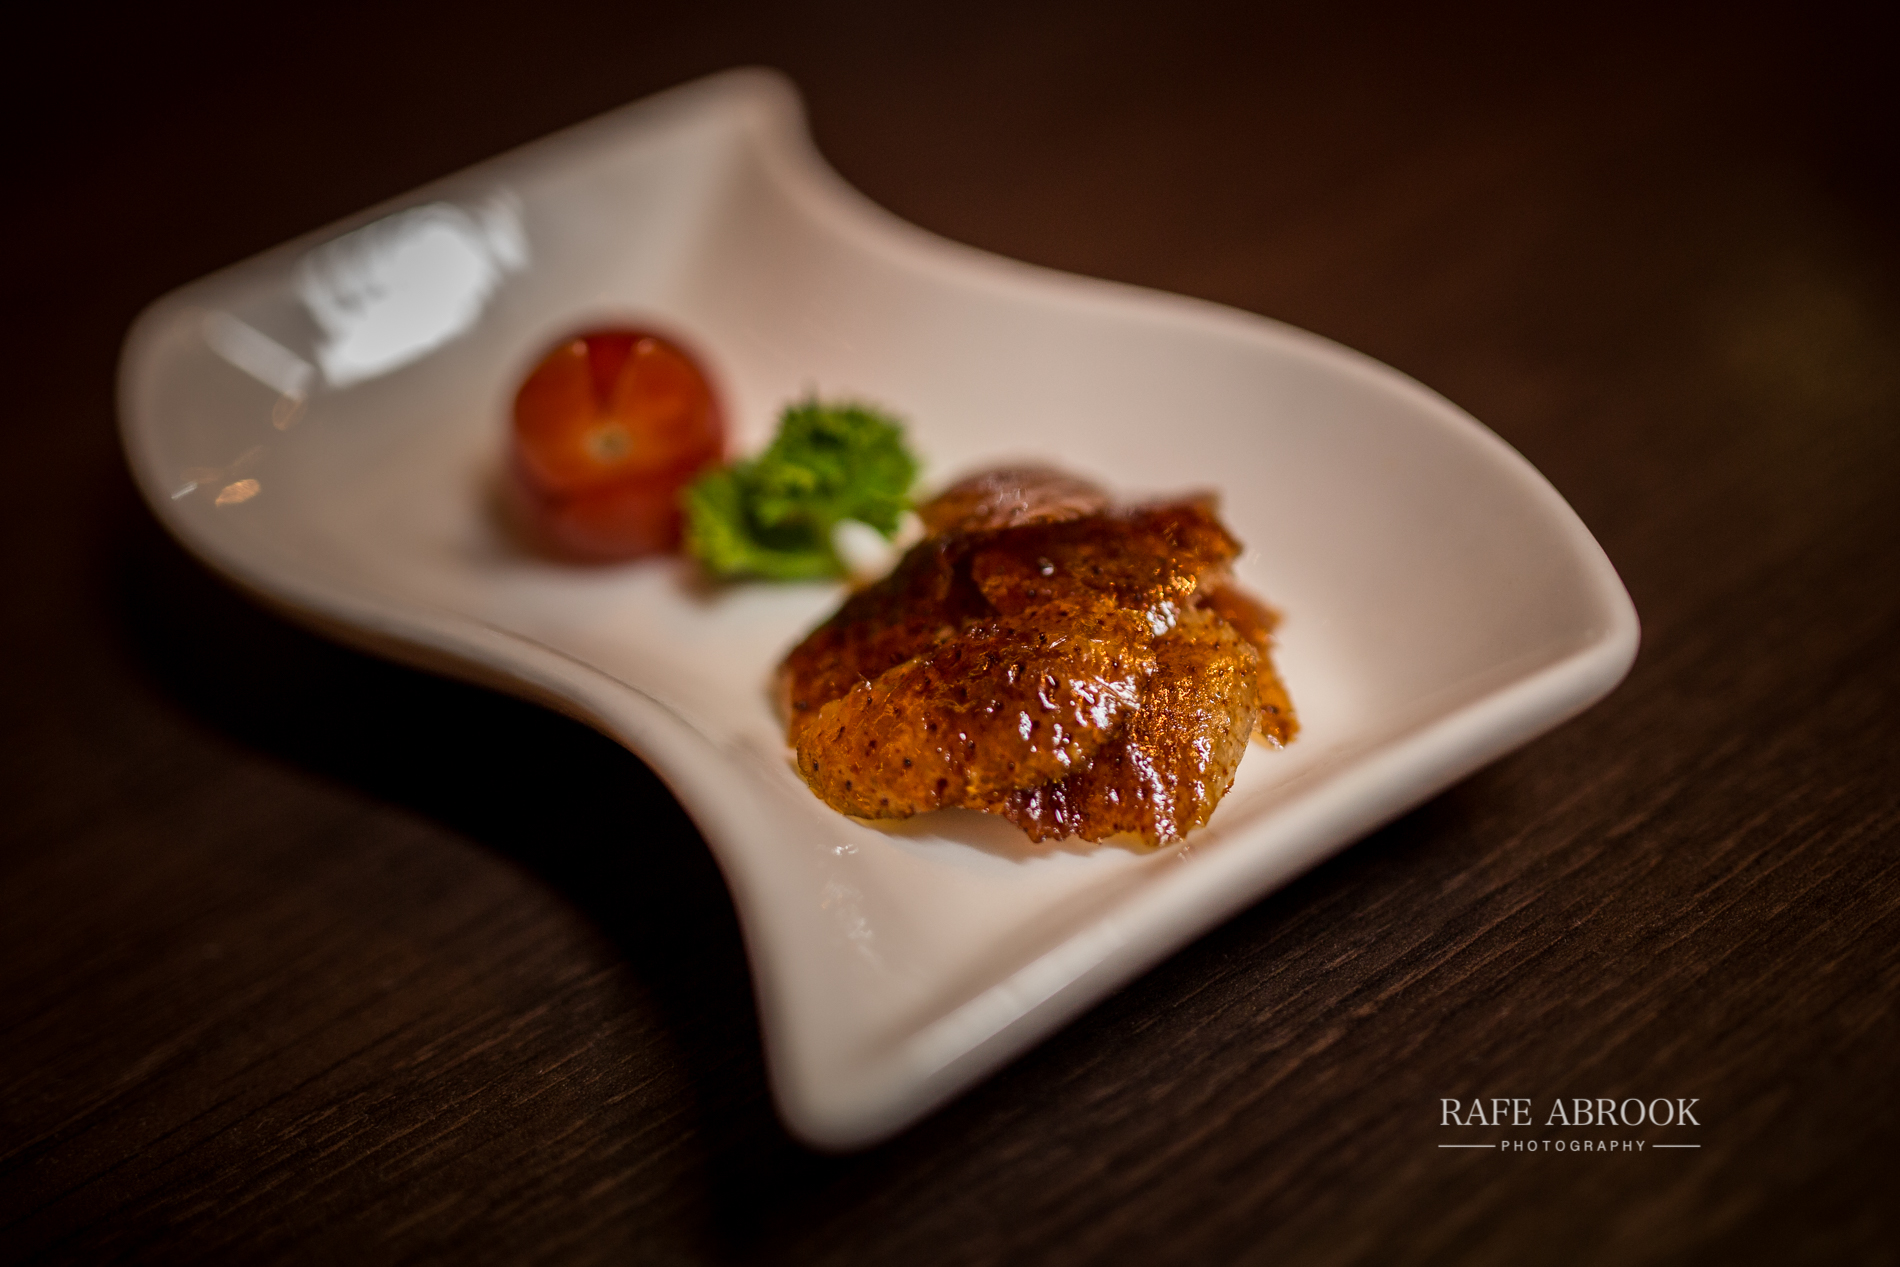 min jiang food blogger rafe abrook photography training-1011.jpg